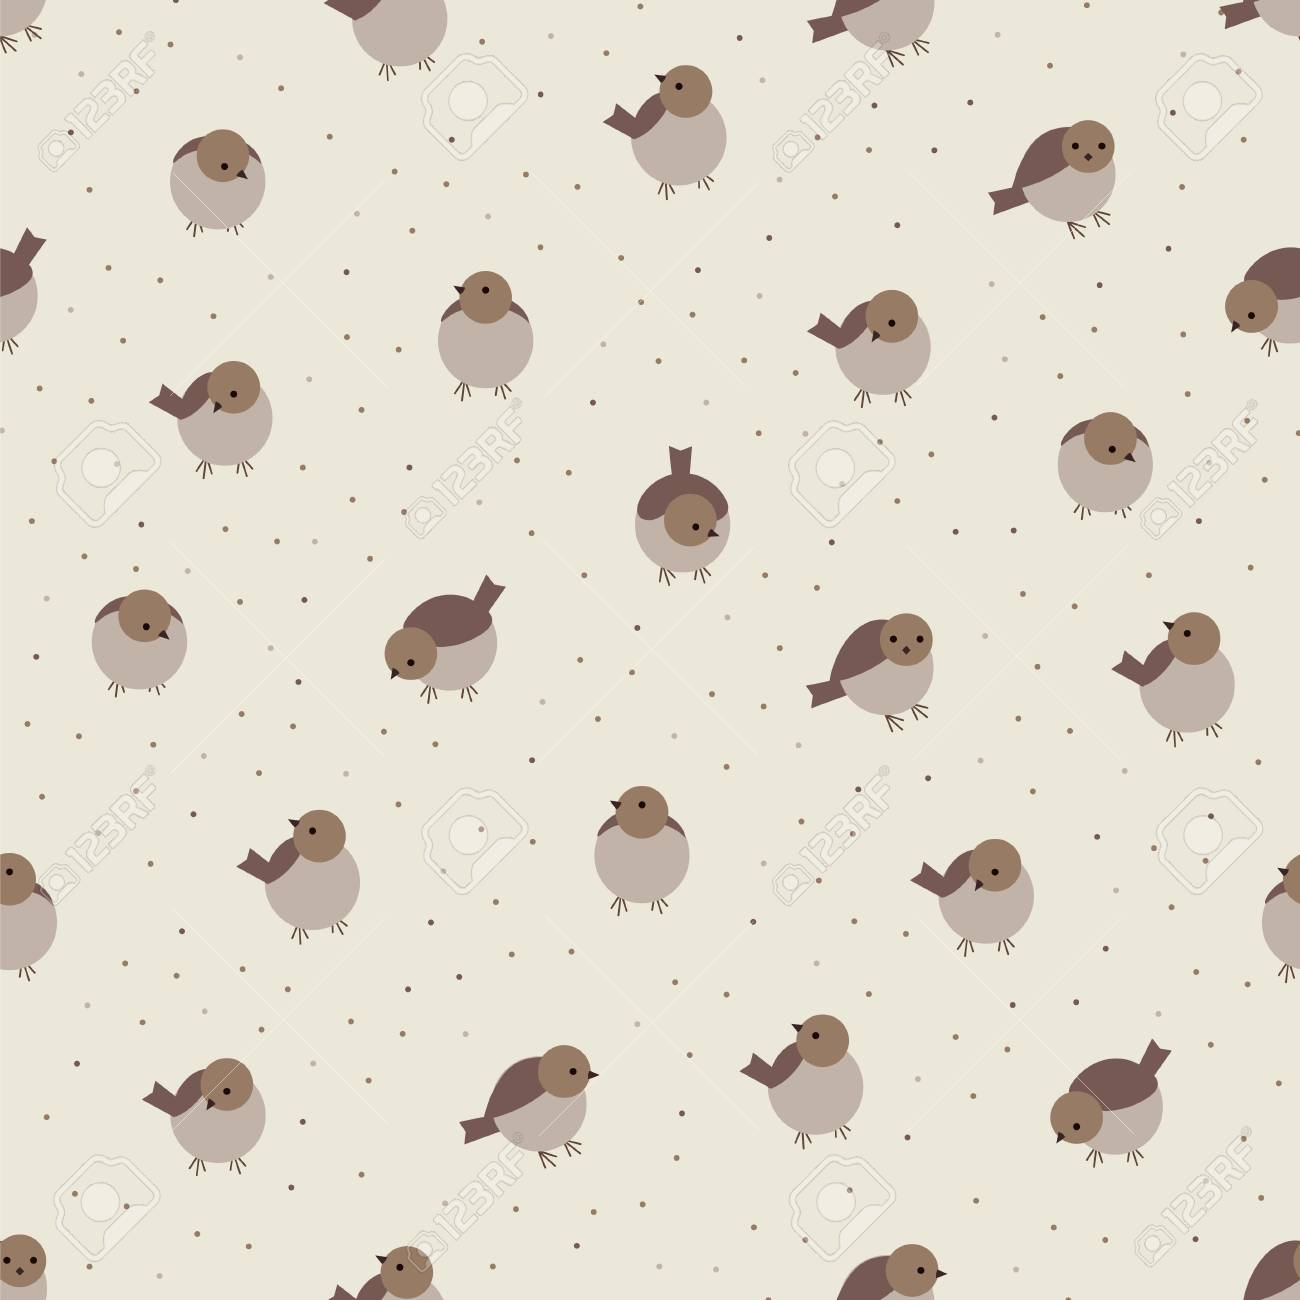 Cute Cartoon Birds Sparrow Beige Brown Seamless Pattern Wallpaper